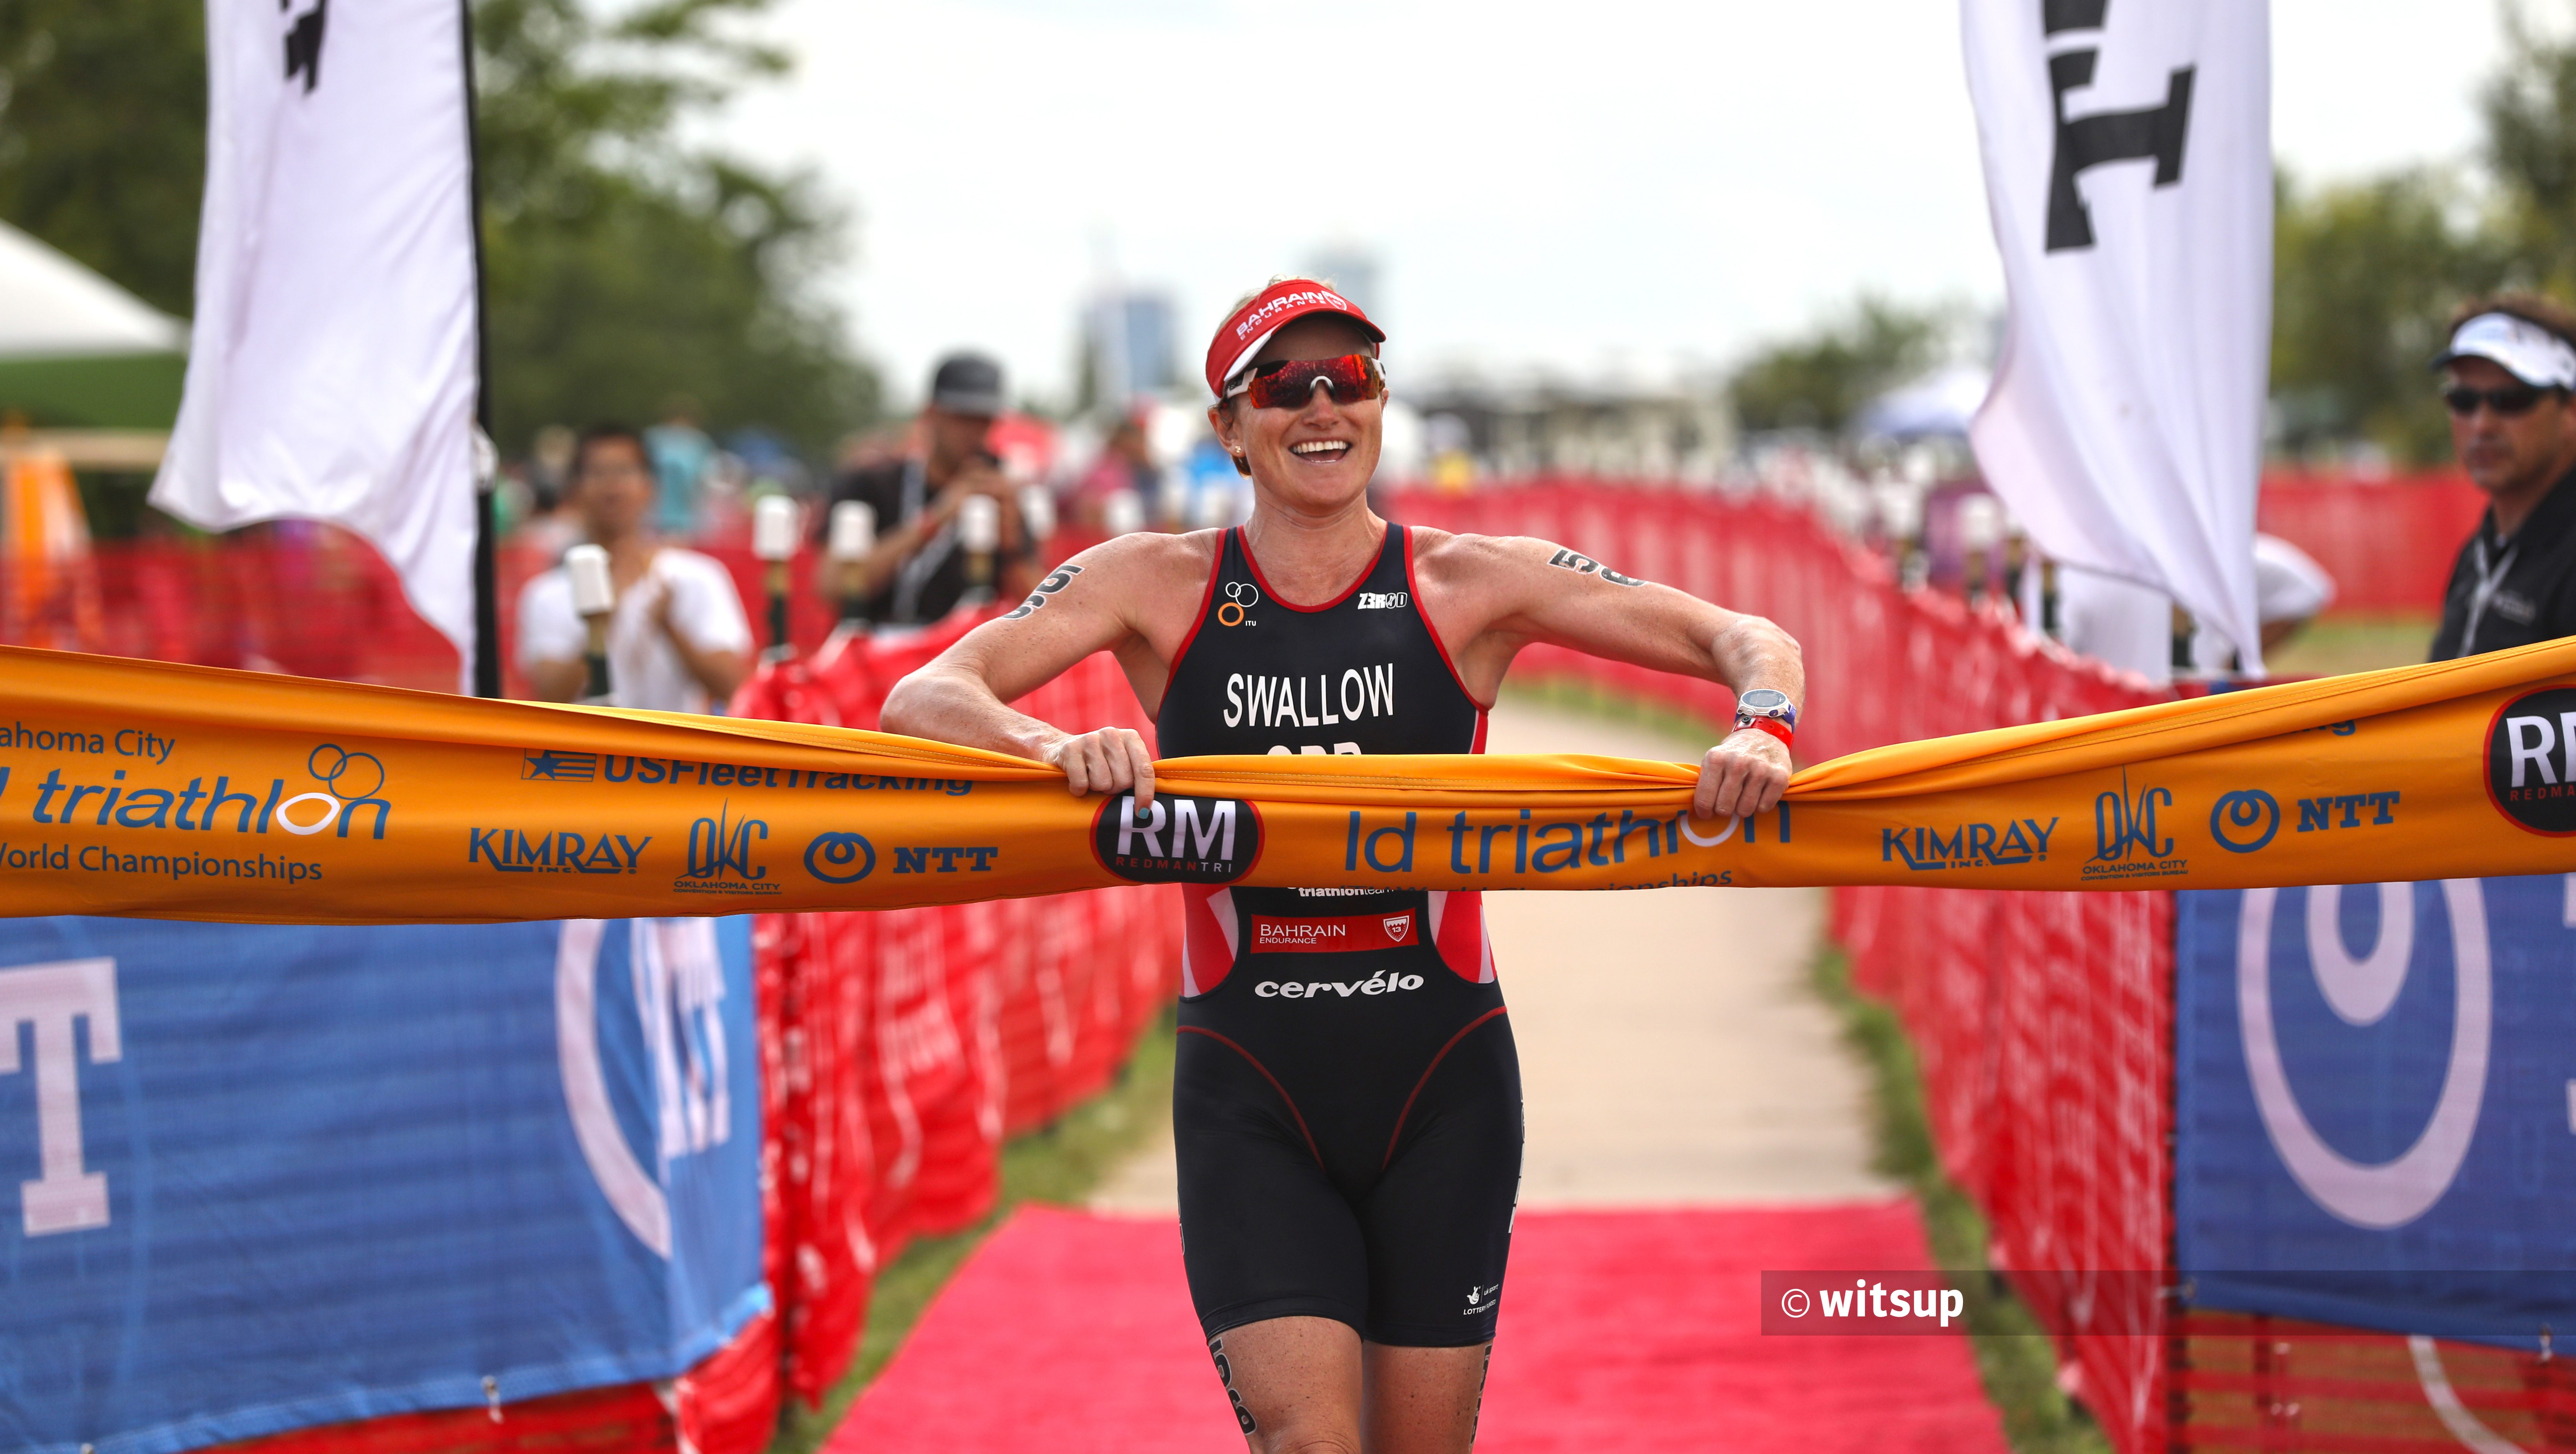 Sensational Swallow Wins ITU Long Distance World Champs